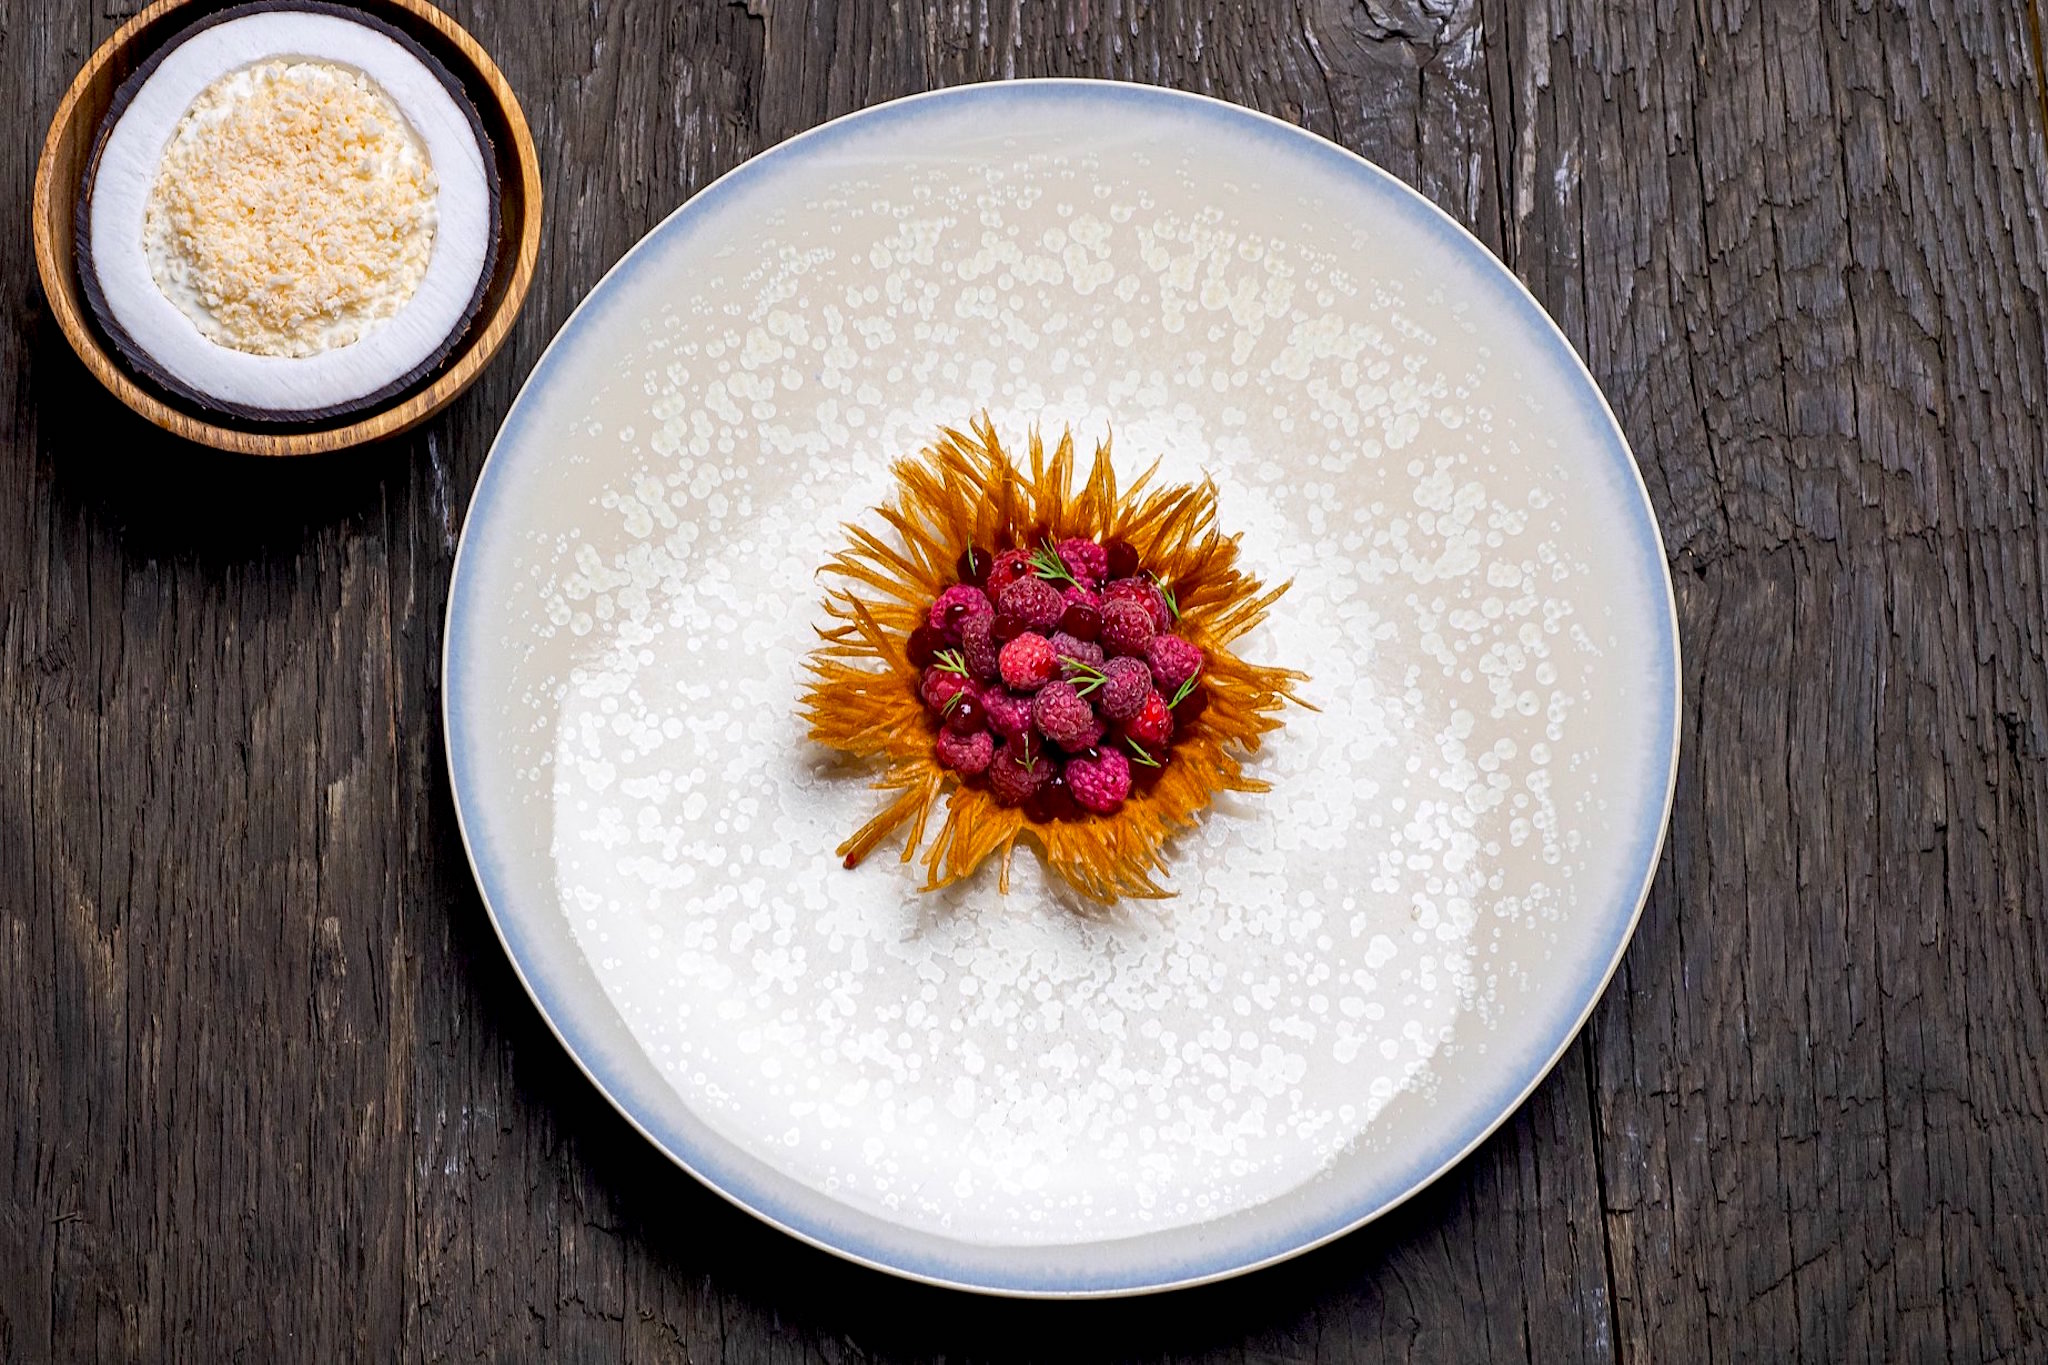 An overhead shot of a beautiful, bright raspberry dessert on a large white plate at Baumanière in Arles.